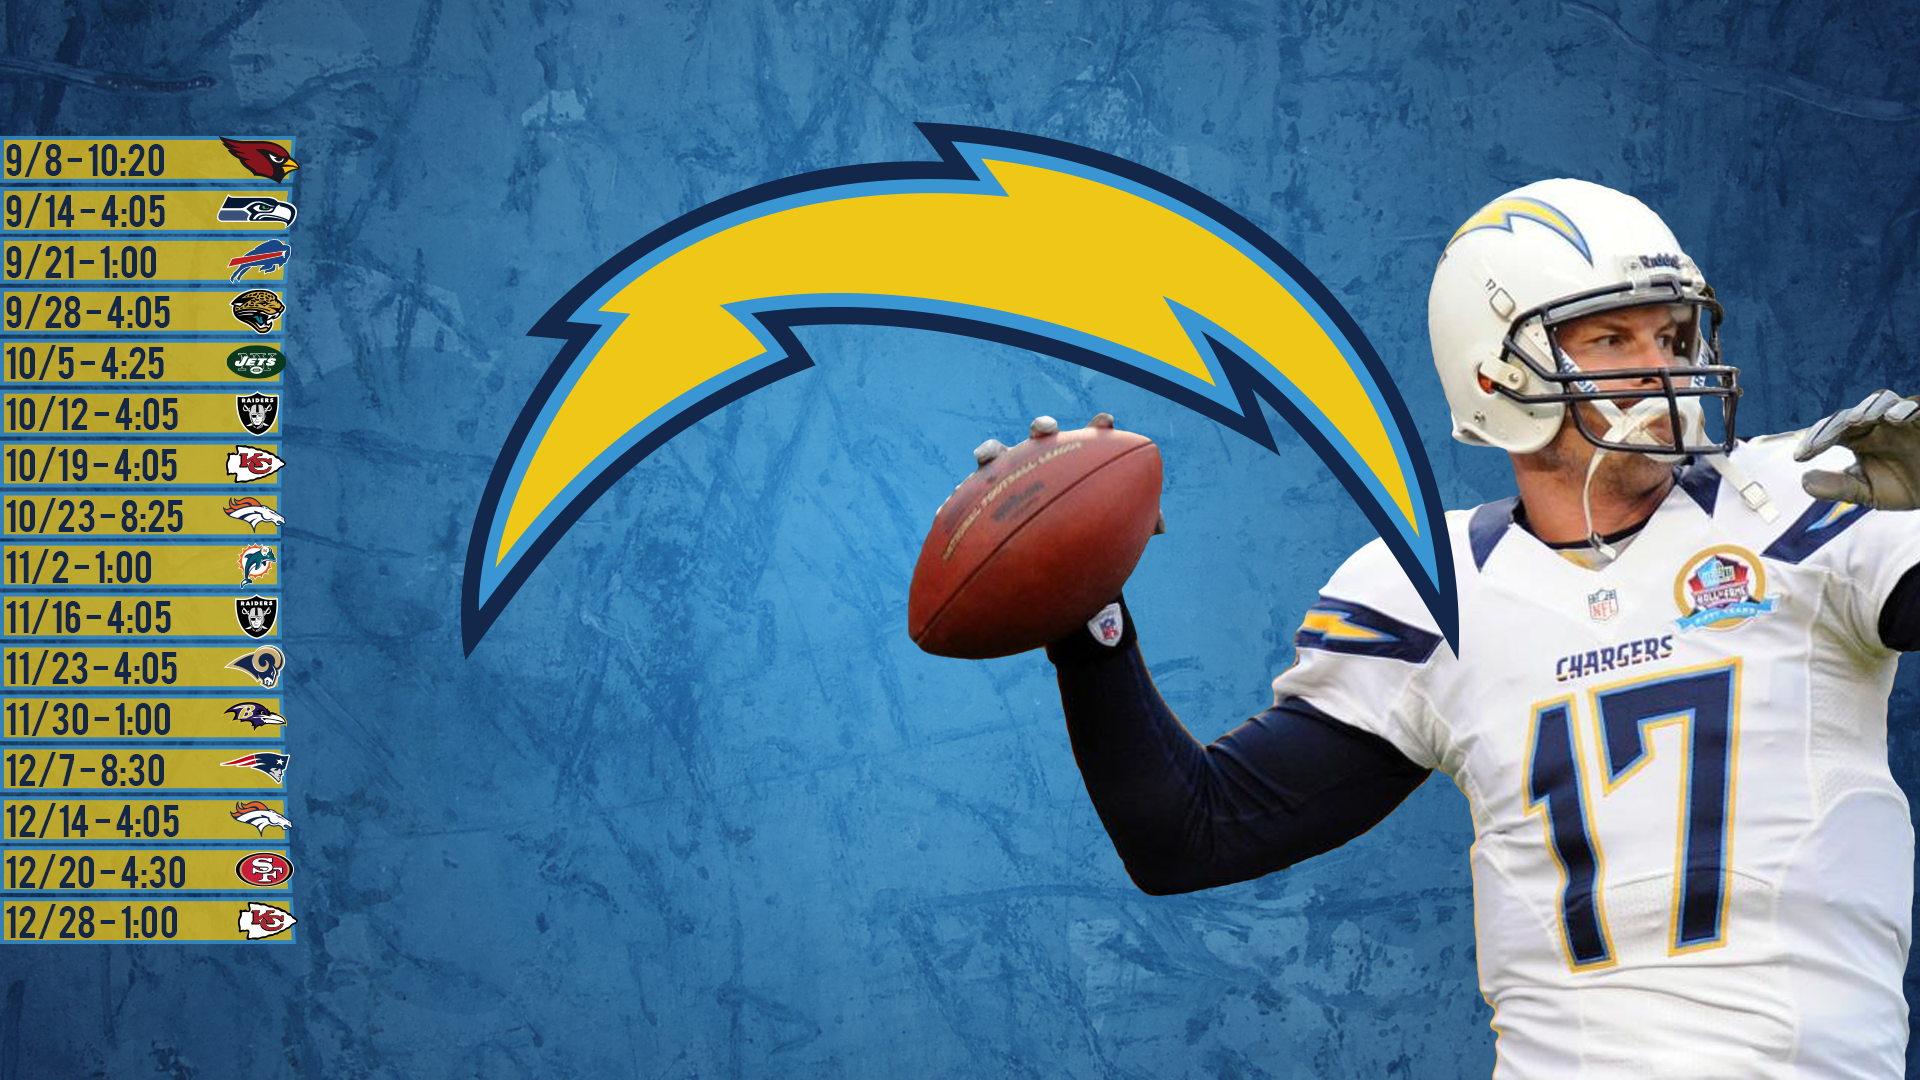 Just Made A Chargers Wallpaper With The 2014 Scheduled San Diego